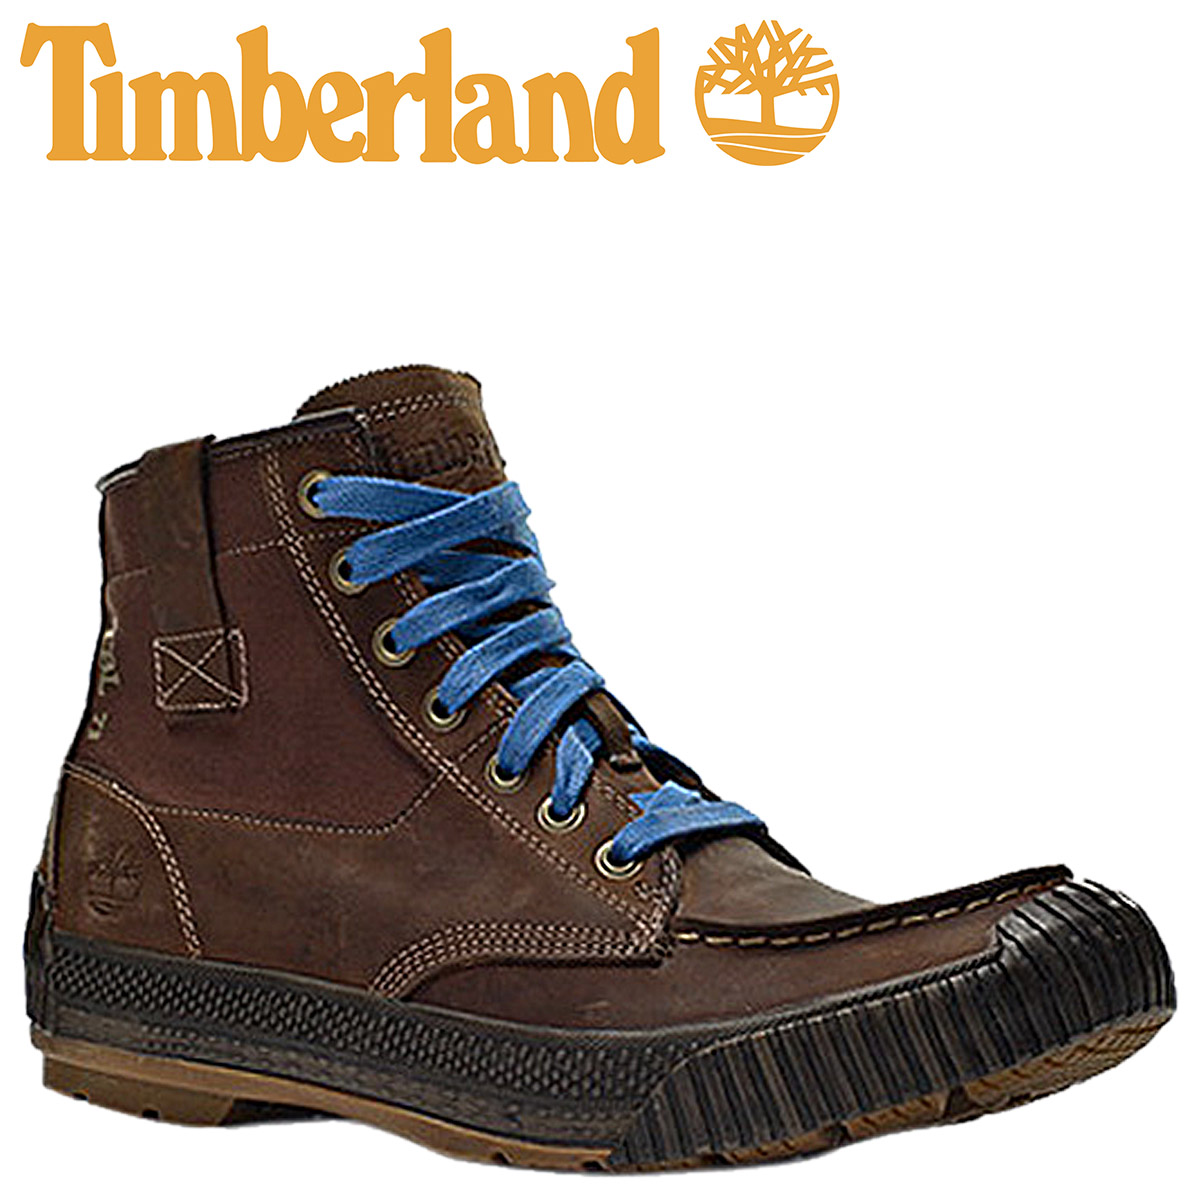 Whats up Sports   SOLD OUT  Timberland Timberland chukka boots Brown ... 306d8627a61